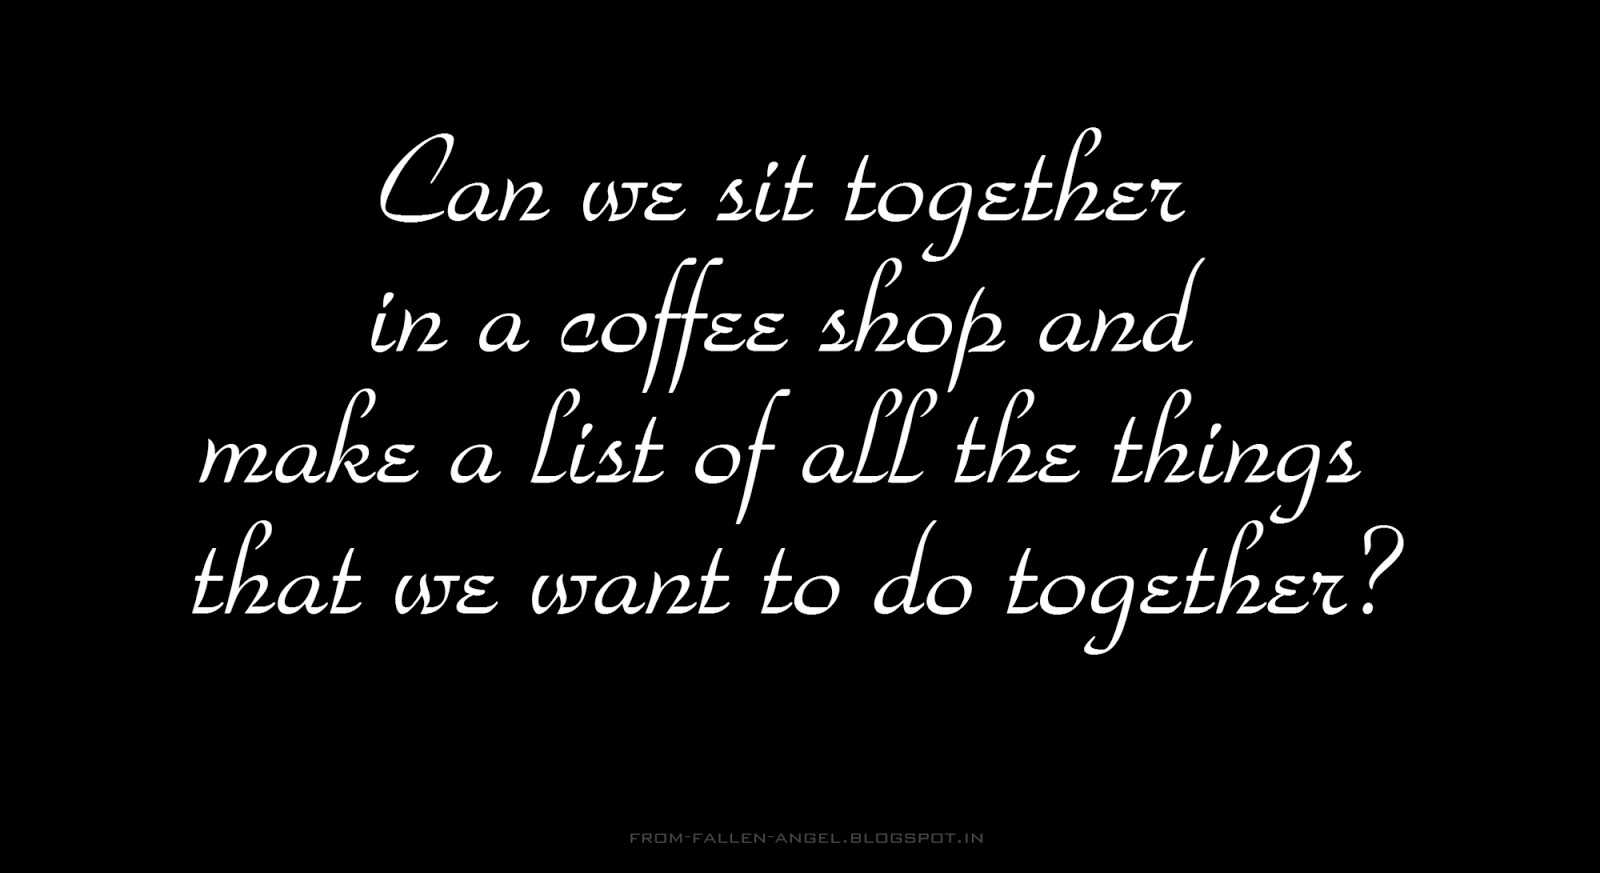 Can we sit together in a coffee shop and make a list of all the things that we want to do together